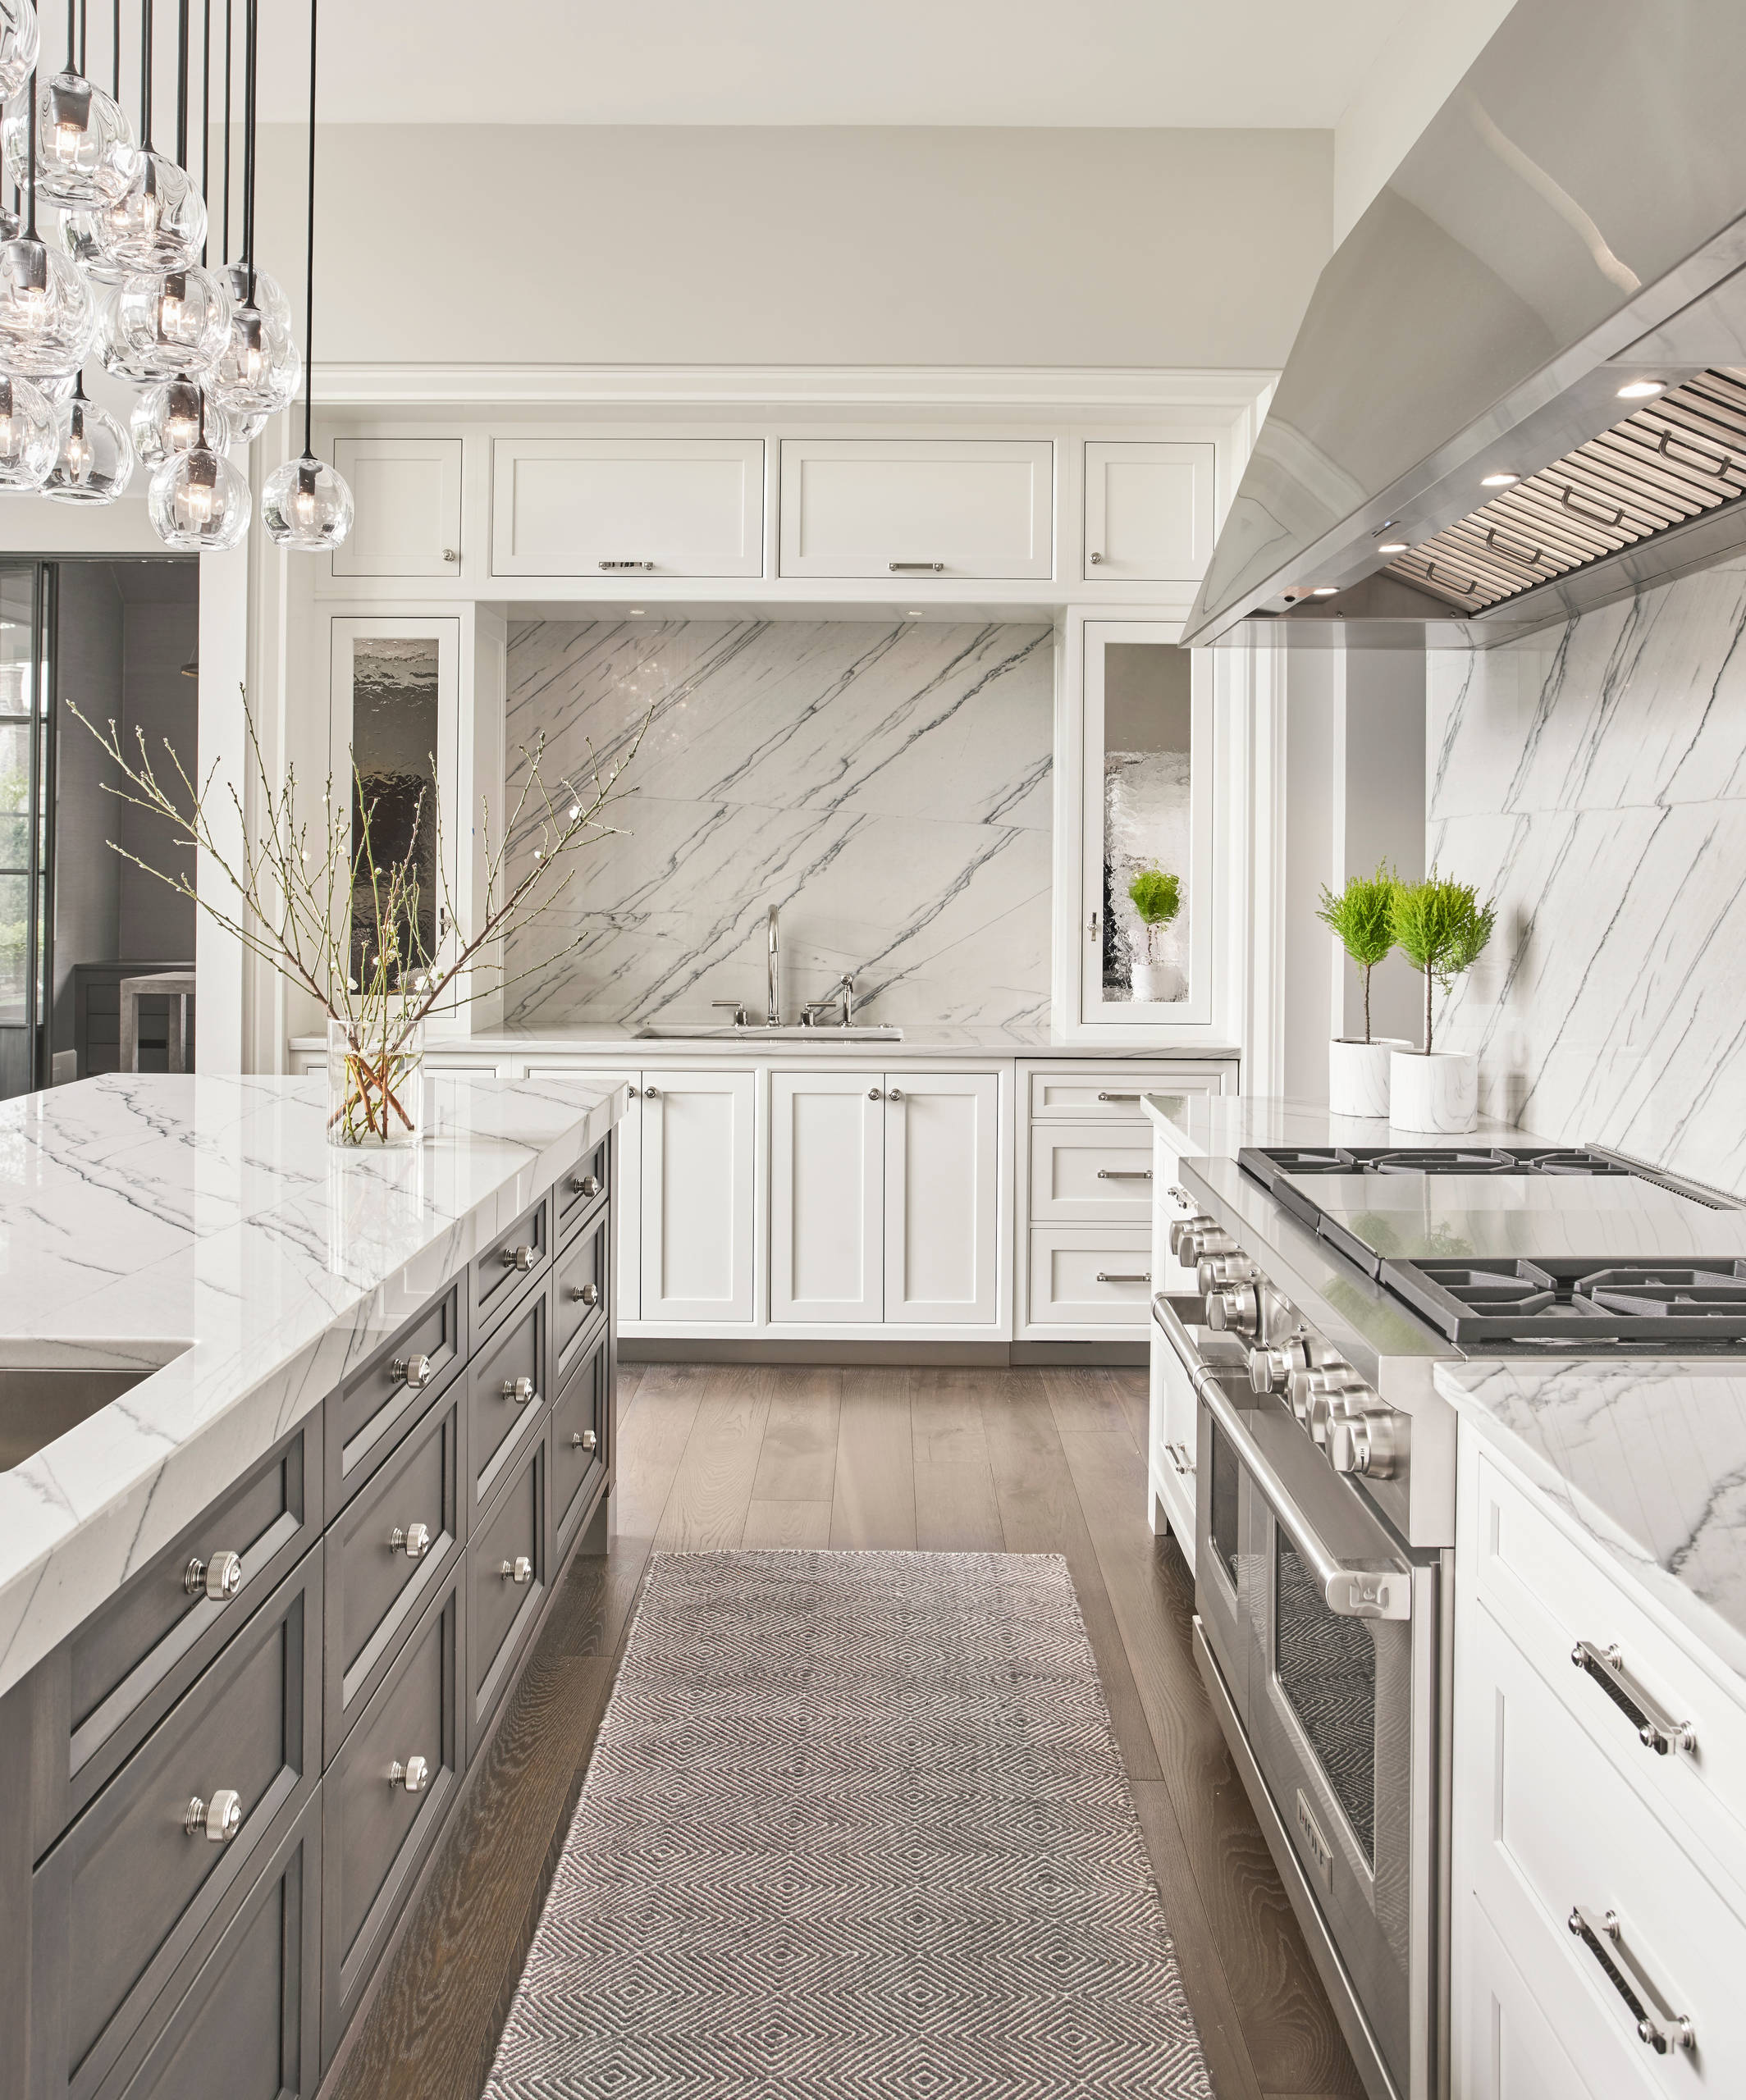 75 Beautiful Gray Floor Kitchen With Shaker Cabinets Pictures Ideas February 2021 Houzz